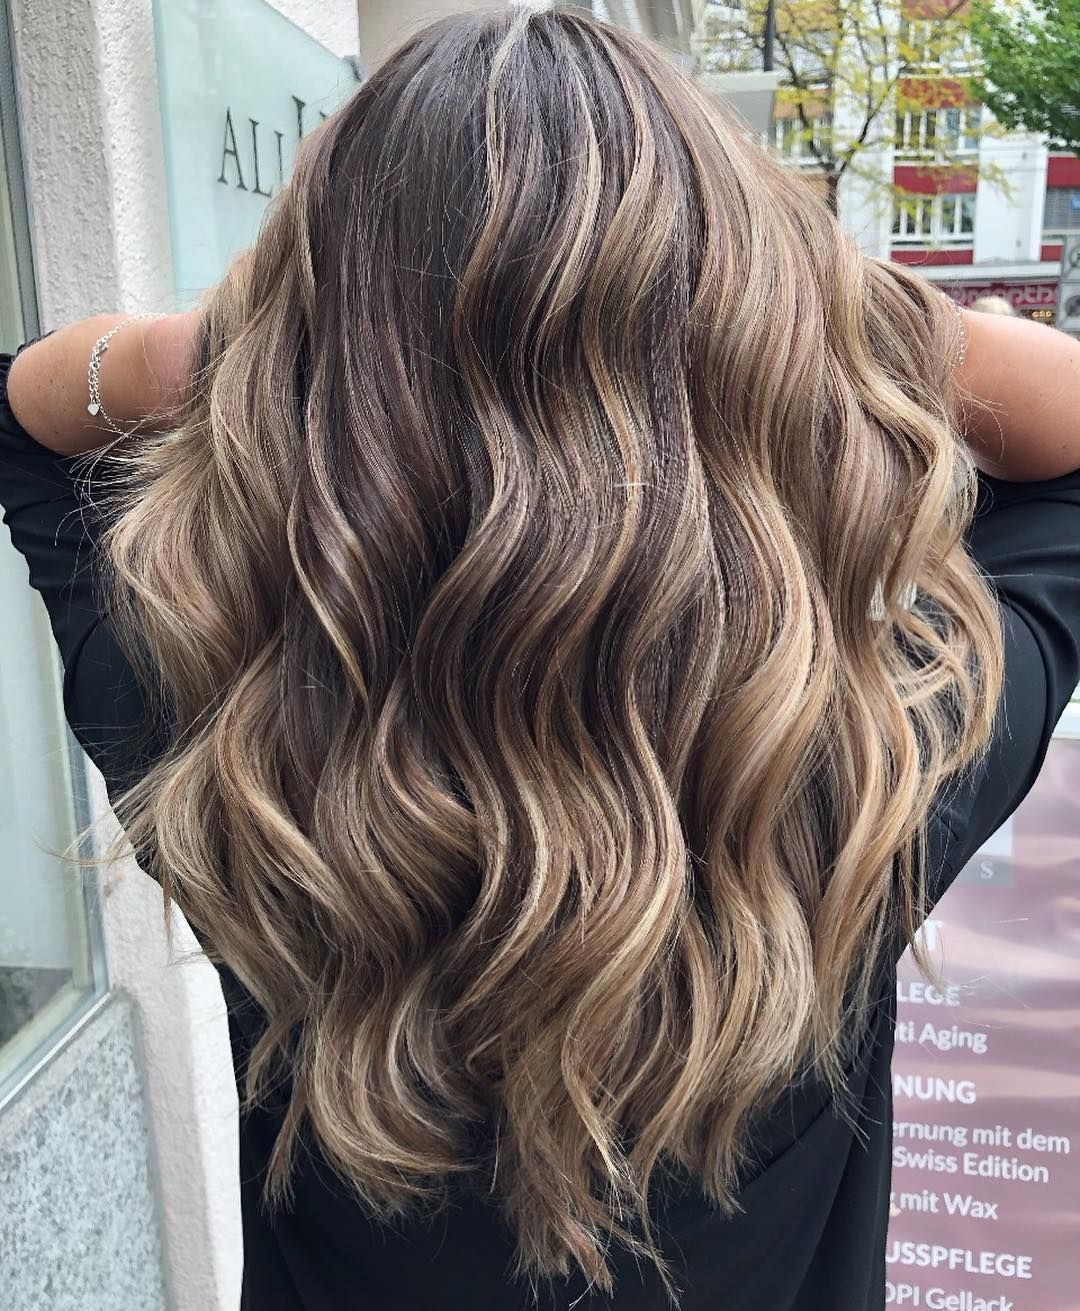 New The 10 Best Hairstyles Today With Pictures Sia Sche Balayage Hairtrends Hair Color Hairstyles H Pretty Hairstyles Cool Hairstyles Hair Styles